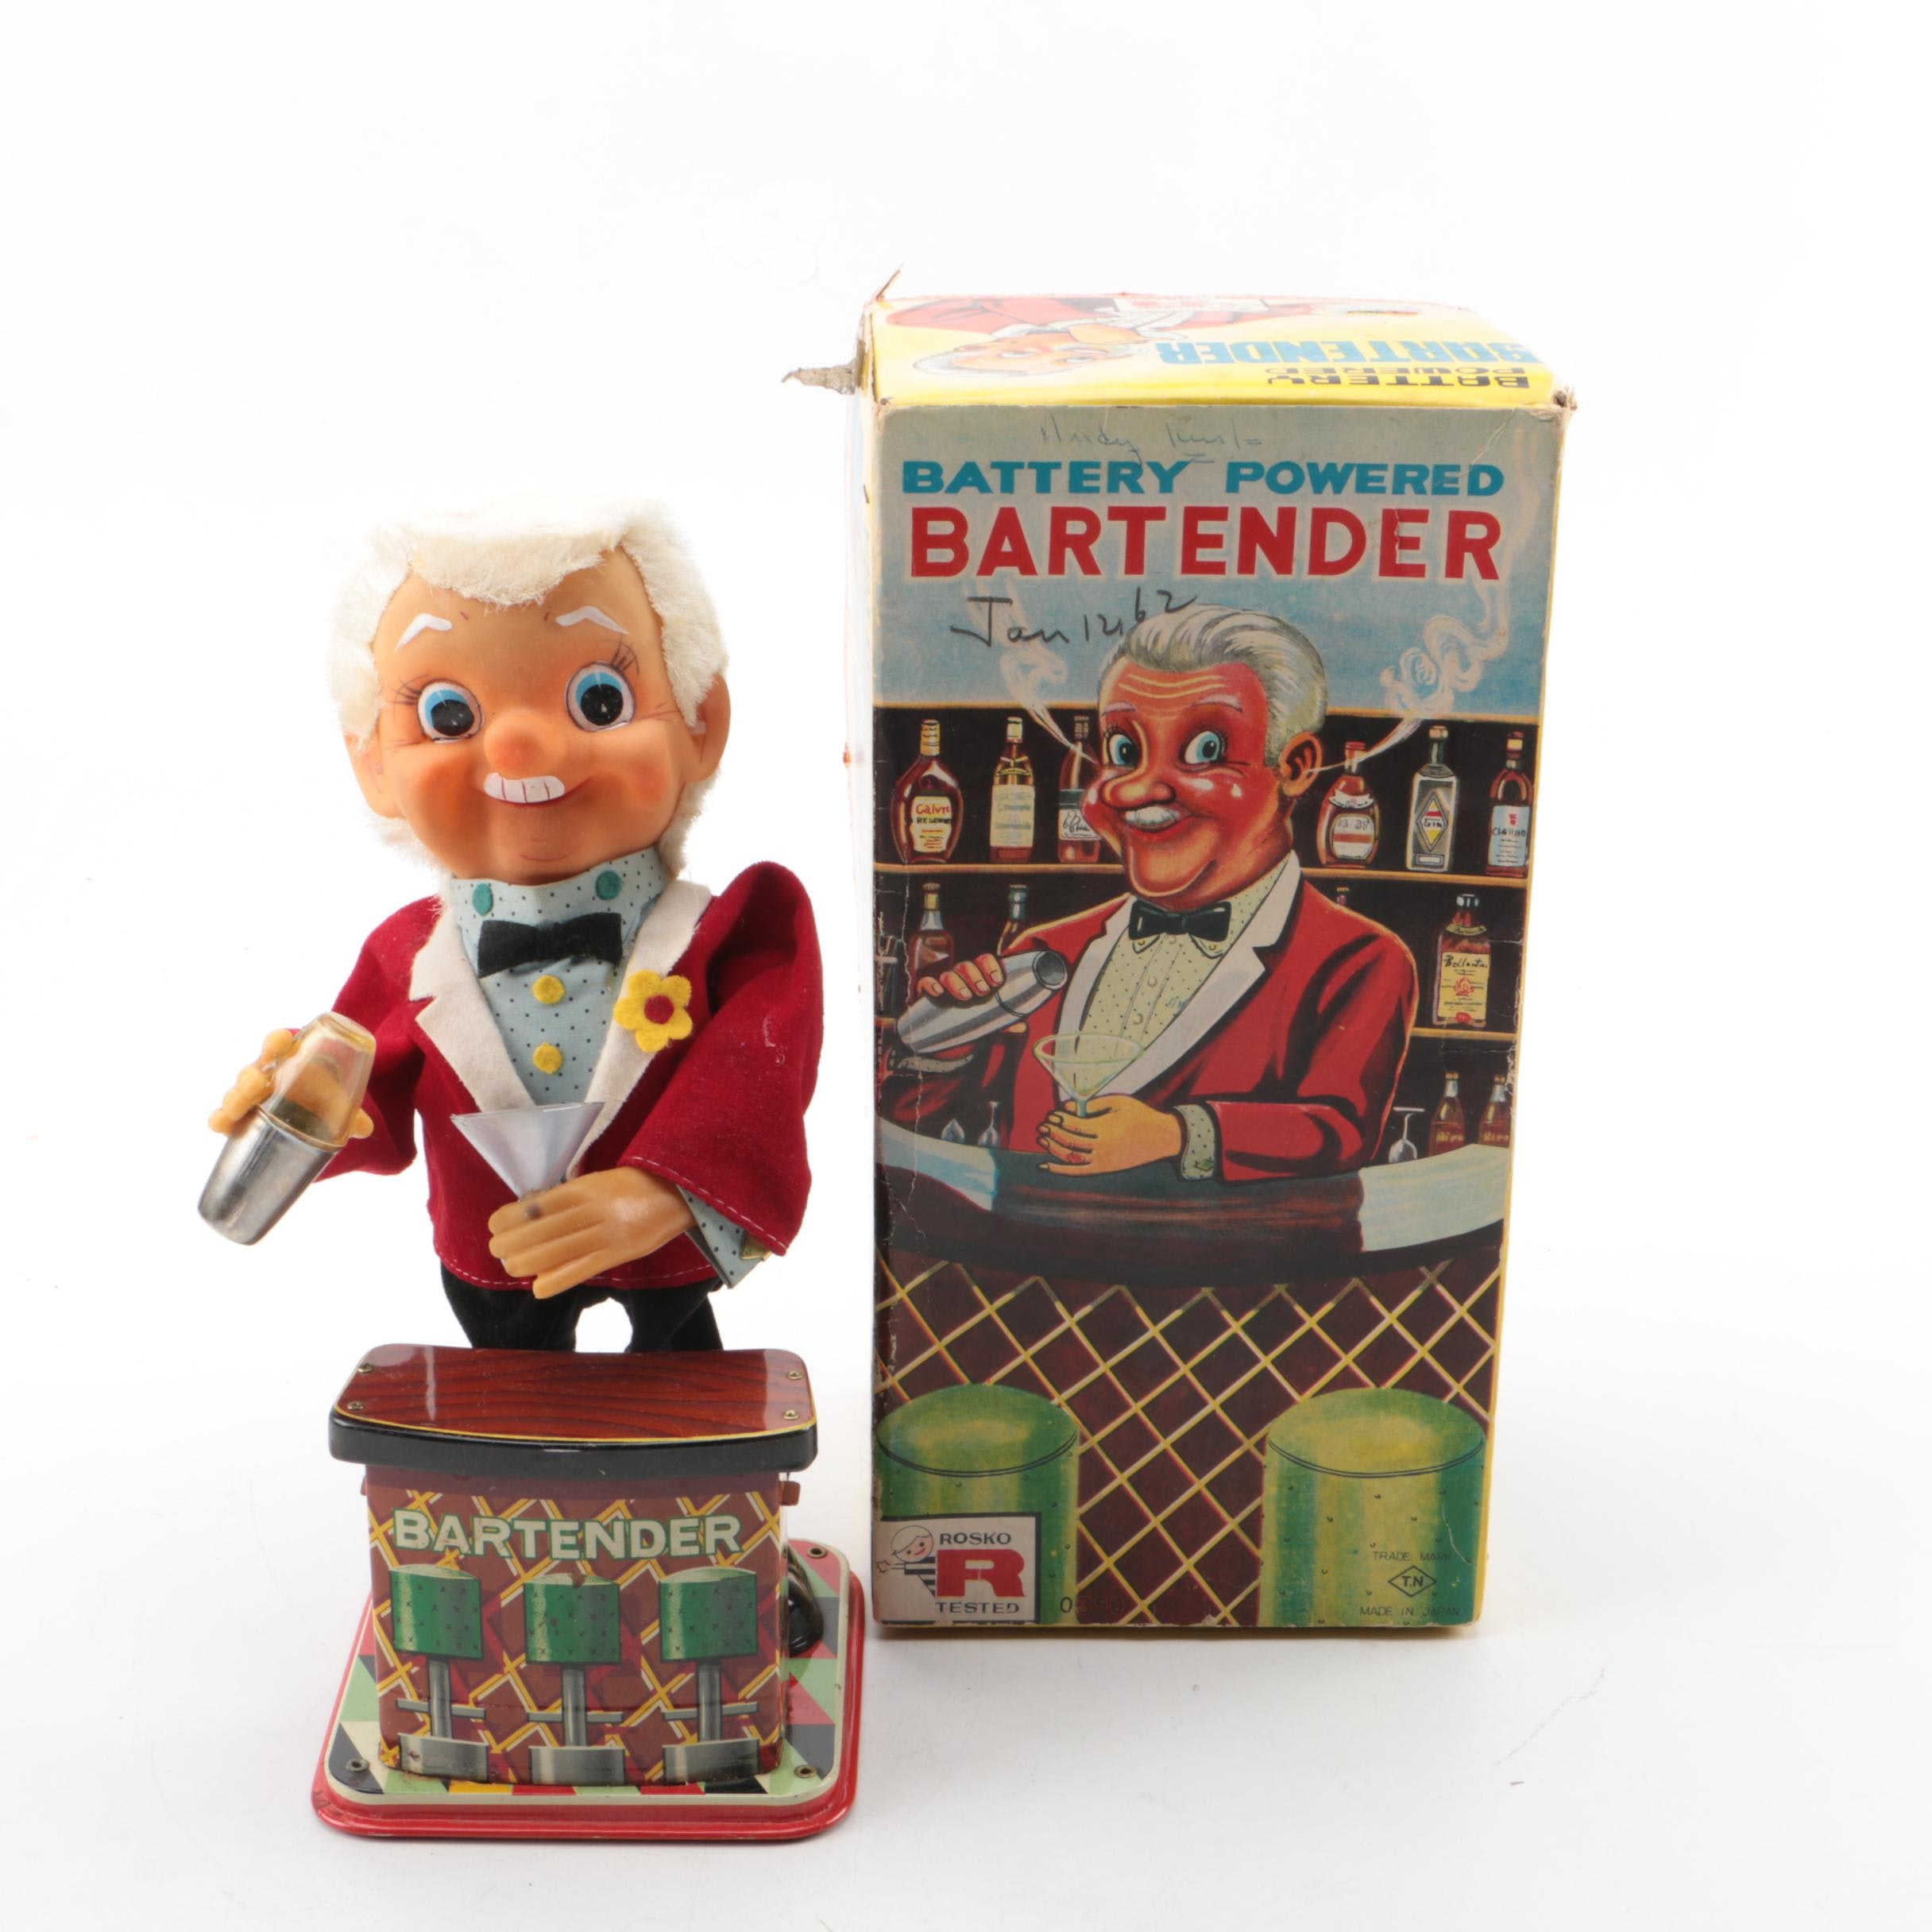 1962 Battery Powered Bartender by Rosko